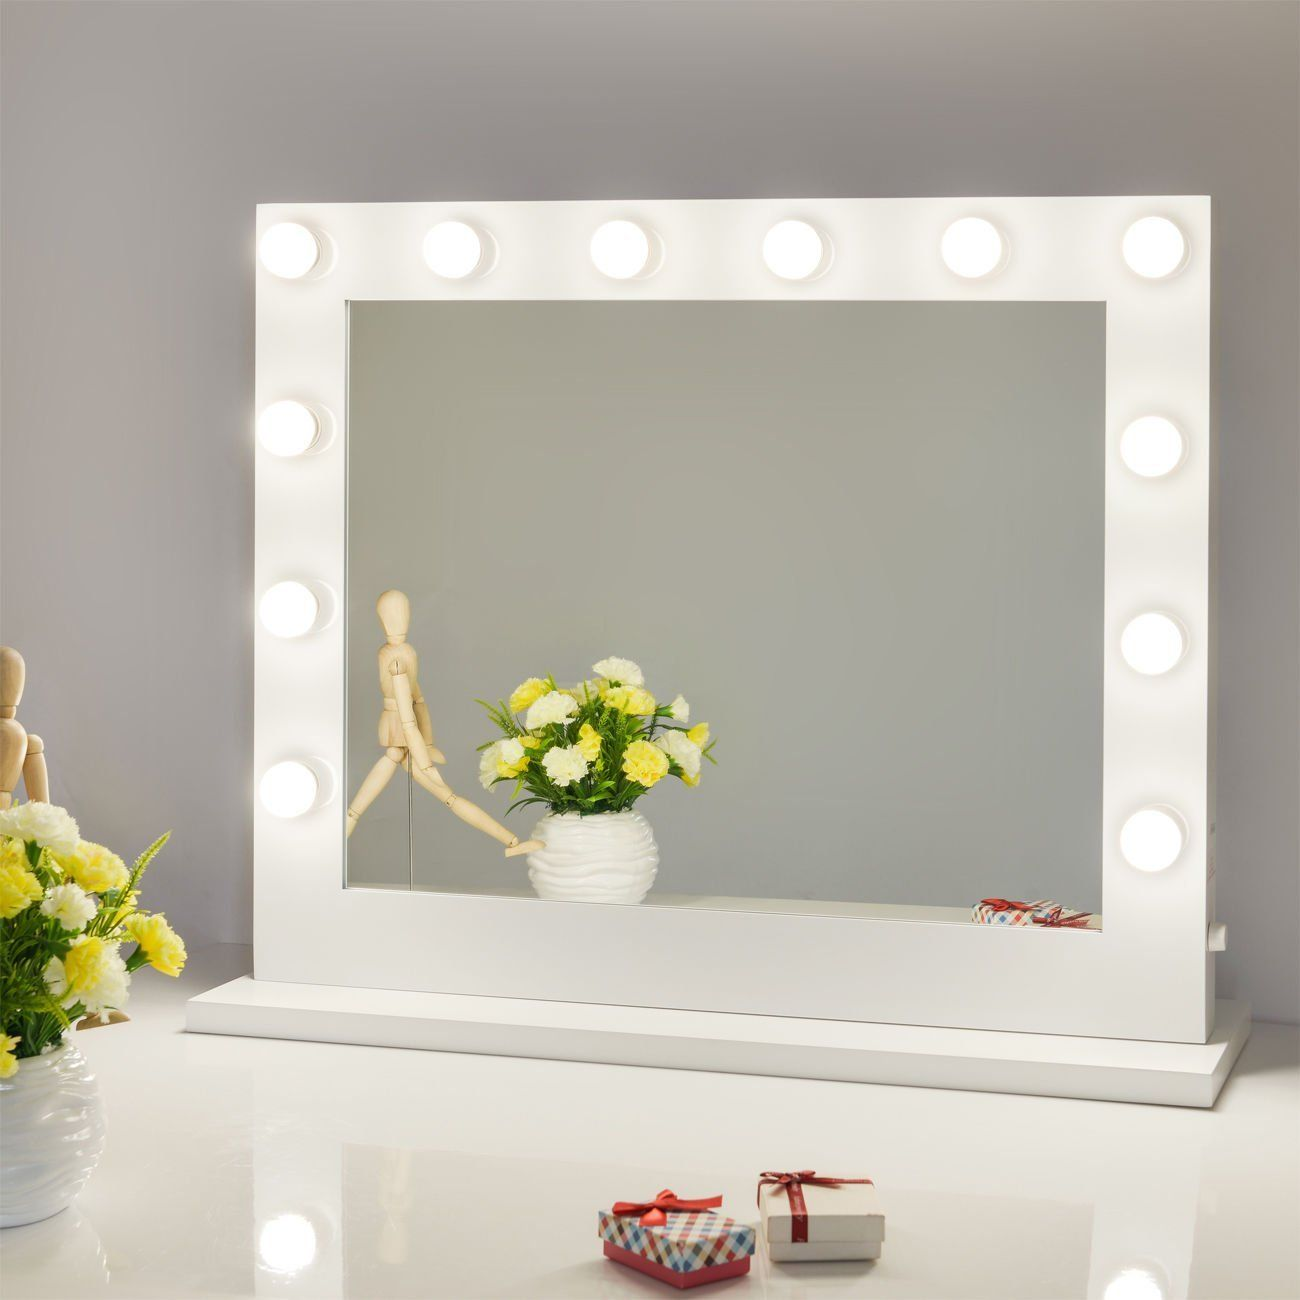 Chende White Hollywood Lighted Makeup Vanity Mirror Light, Makeup Dressing  Table Vanity Set Mirrors With Dimmer, Tabletop Or Wall Mounted Vanity, ...